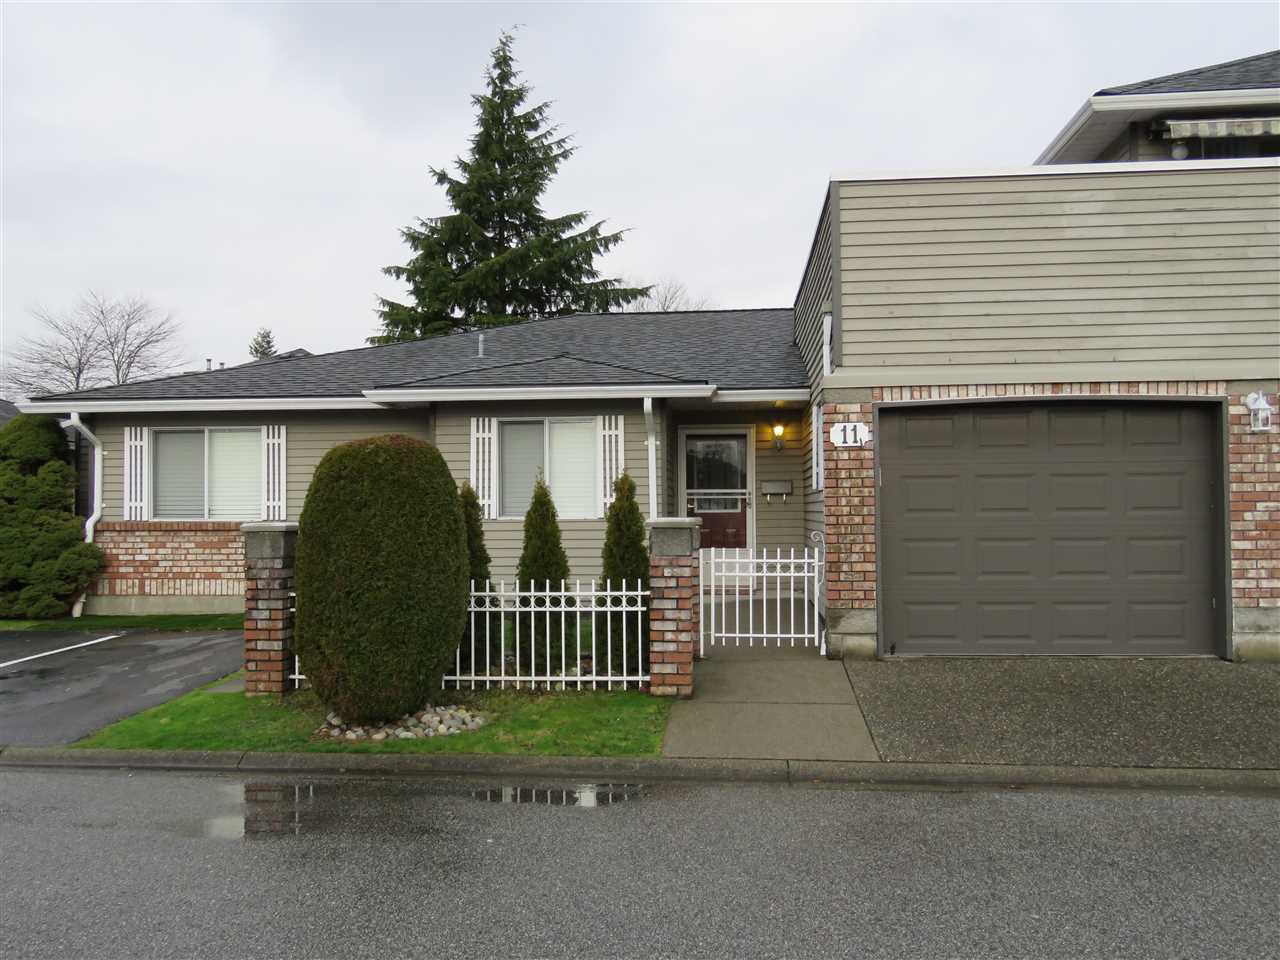 Main Photo: 11 6350 48A Avenue in Delta: Holly Townhouse for sale (Ladner)  : MLS®# R2430189